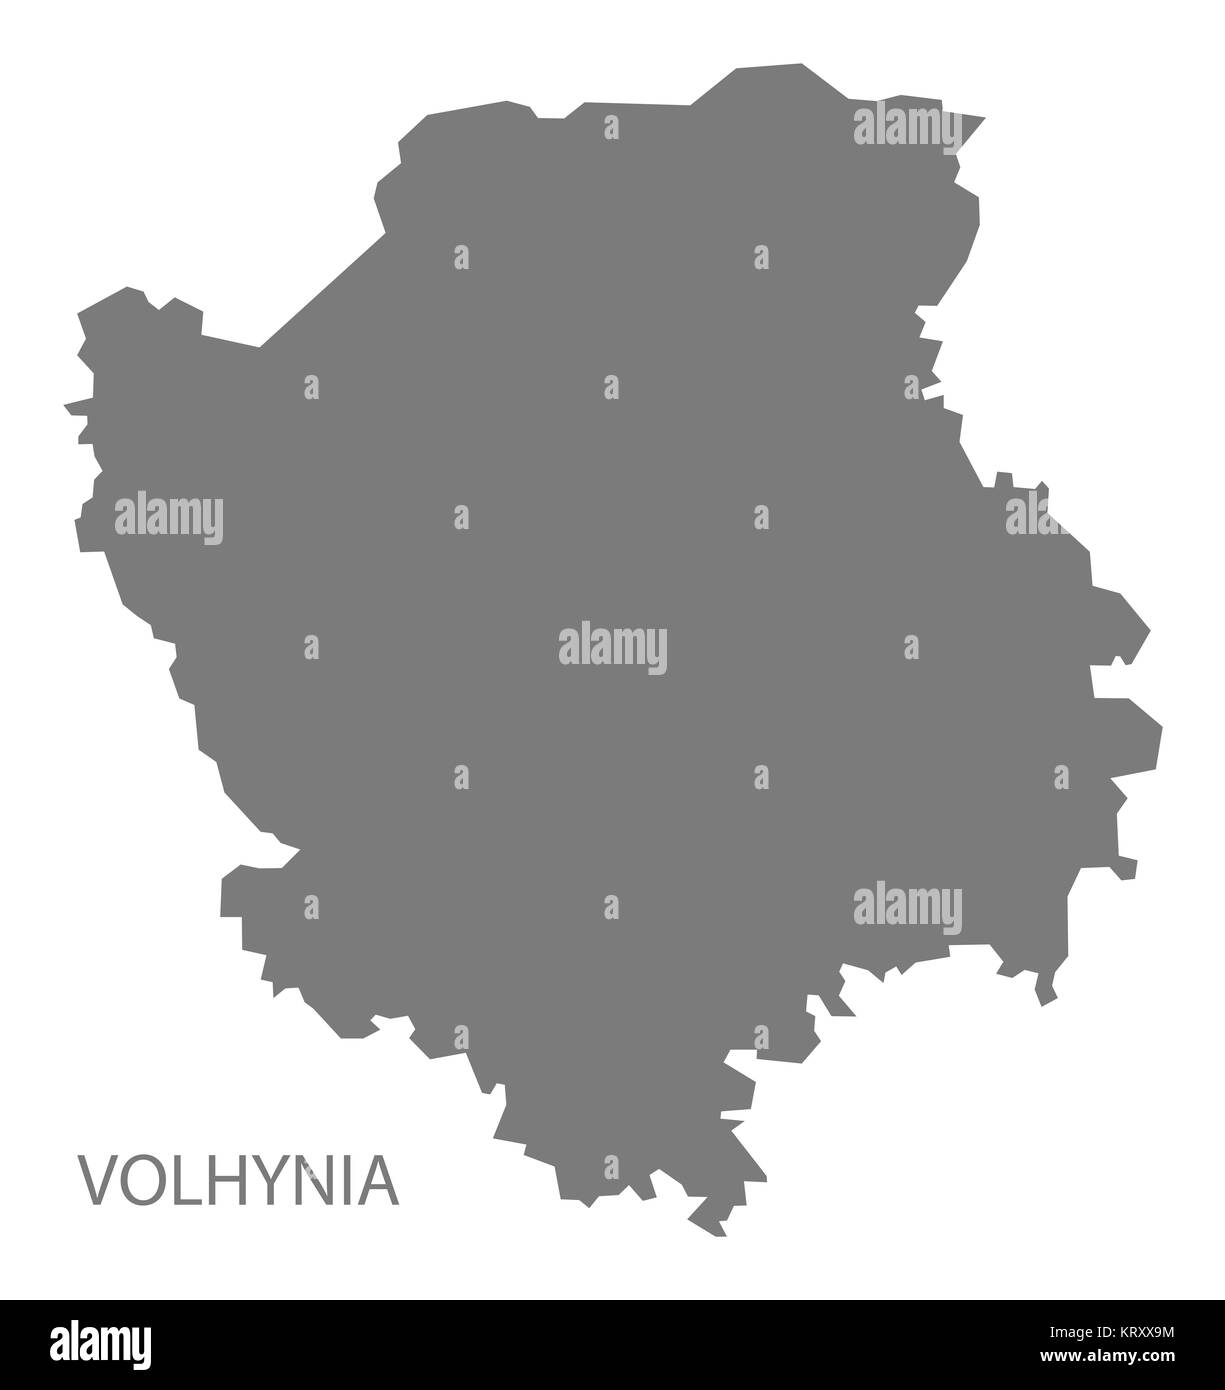 Veterinary clinics of the Volyn region: a selection of sites